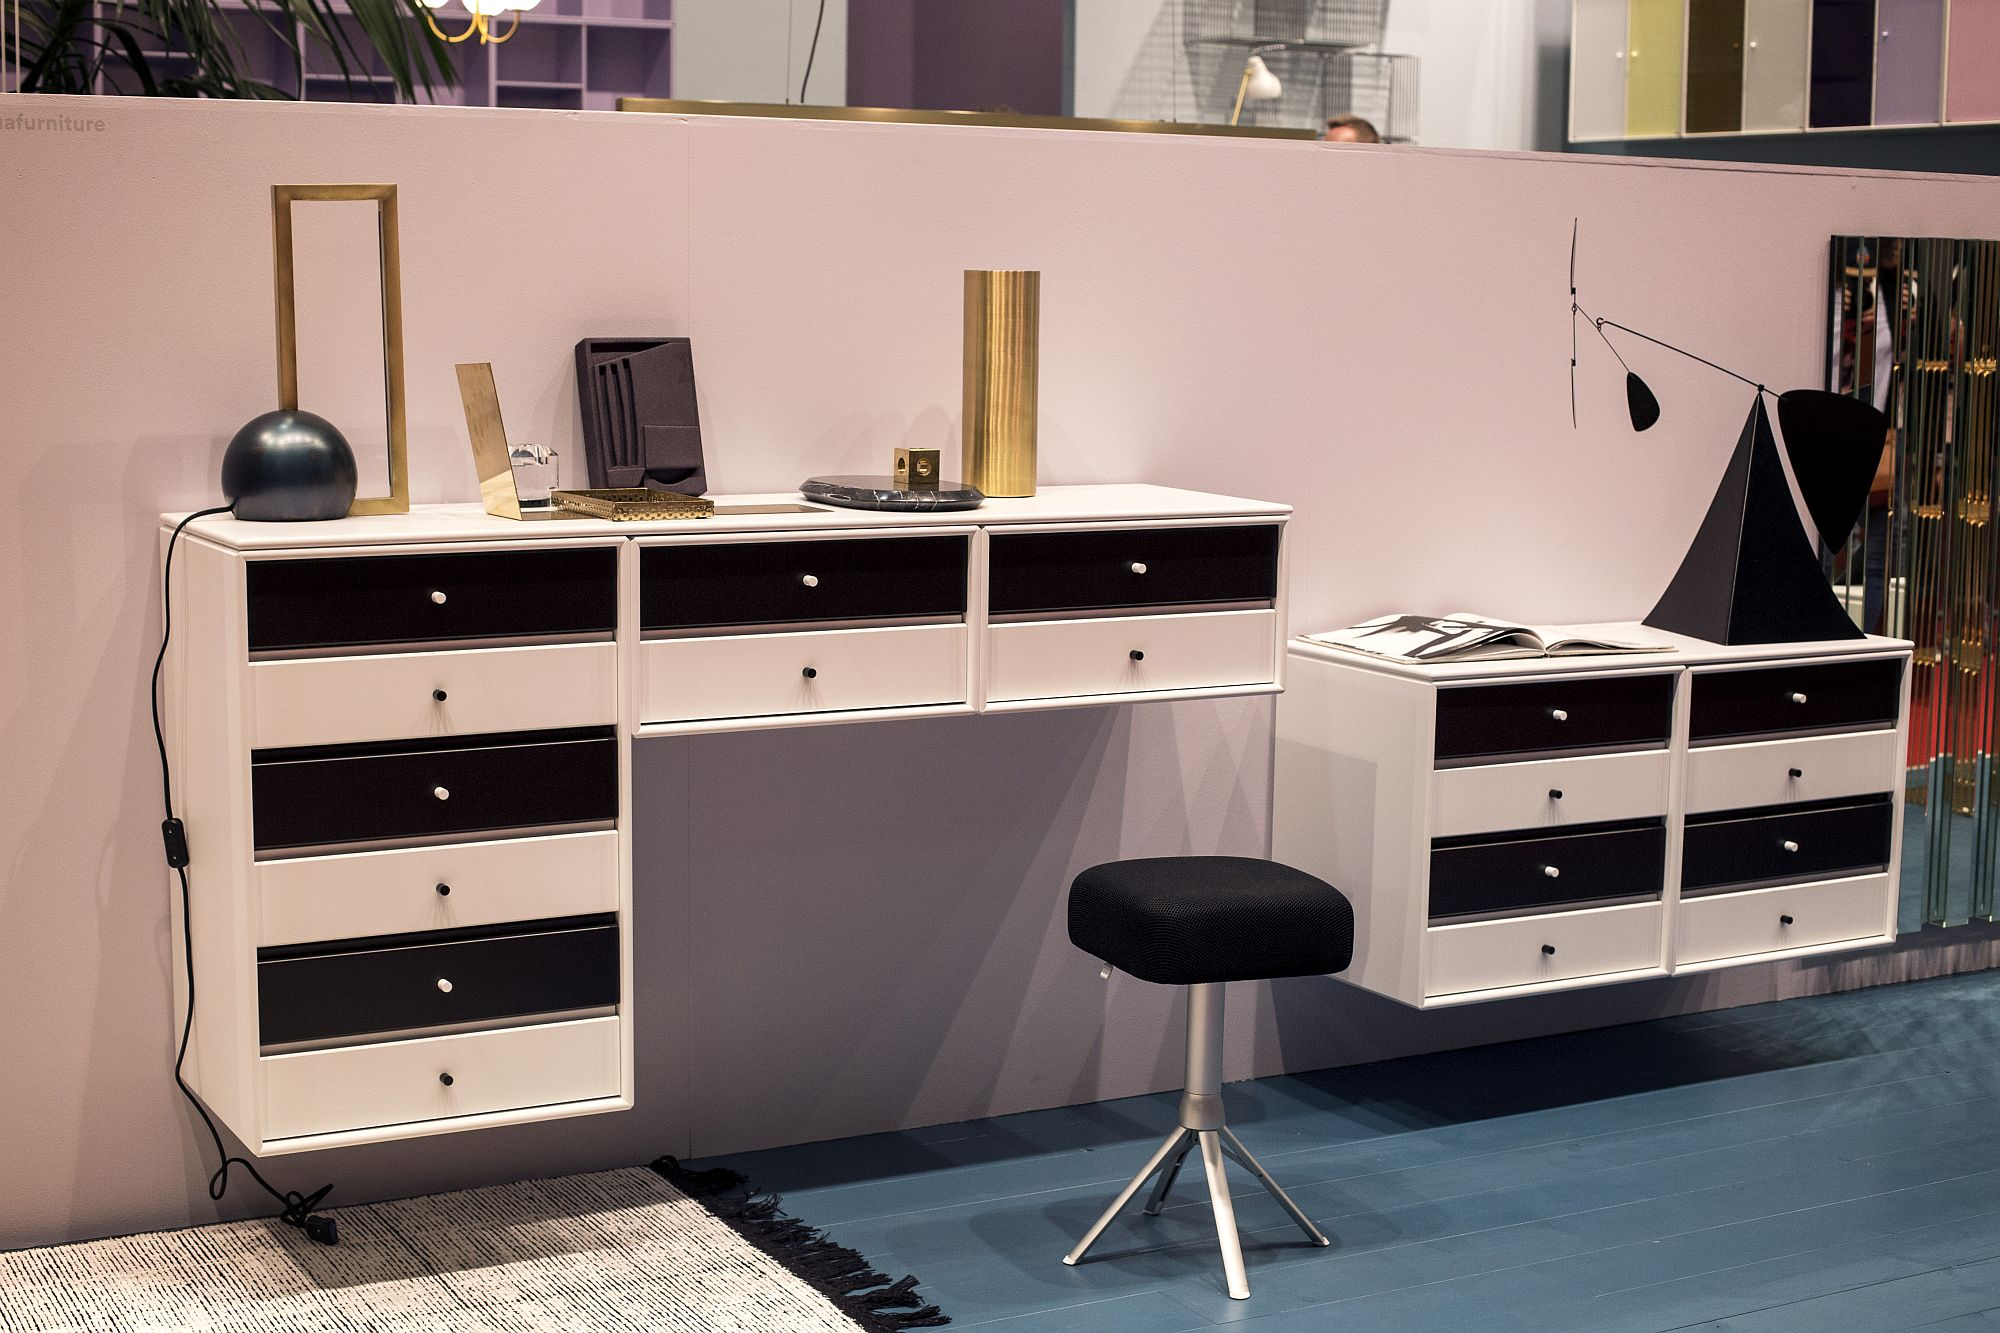 Smart, modular shelving that is wall-mounted also offers a cool work surface when needed